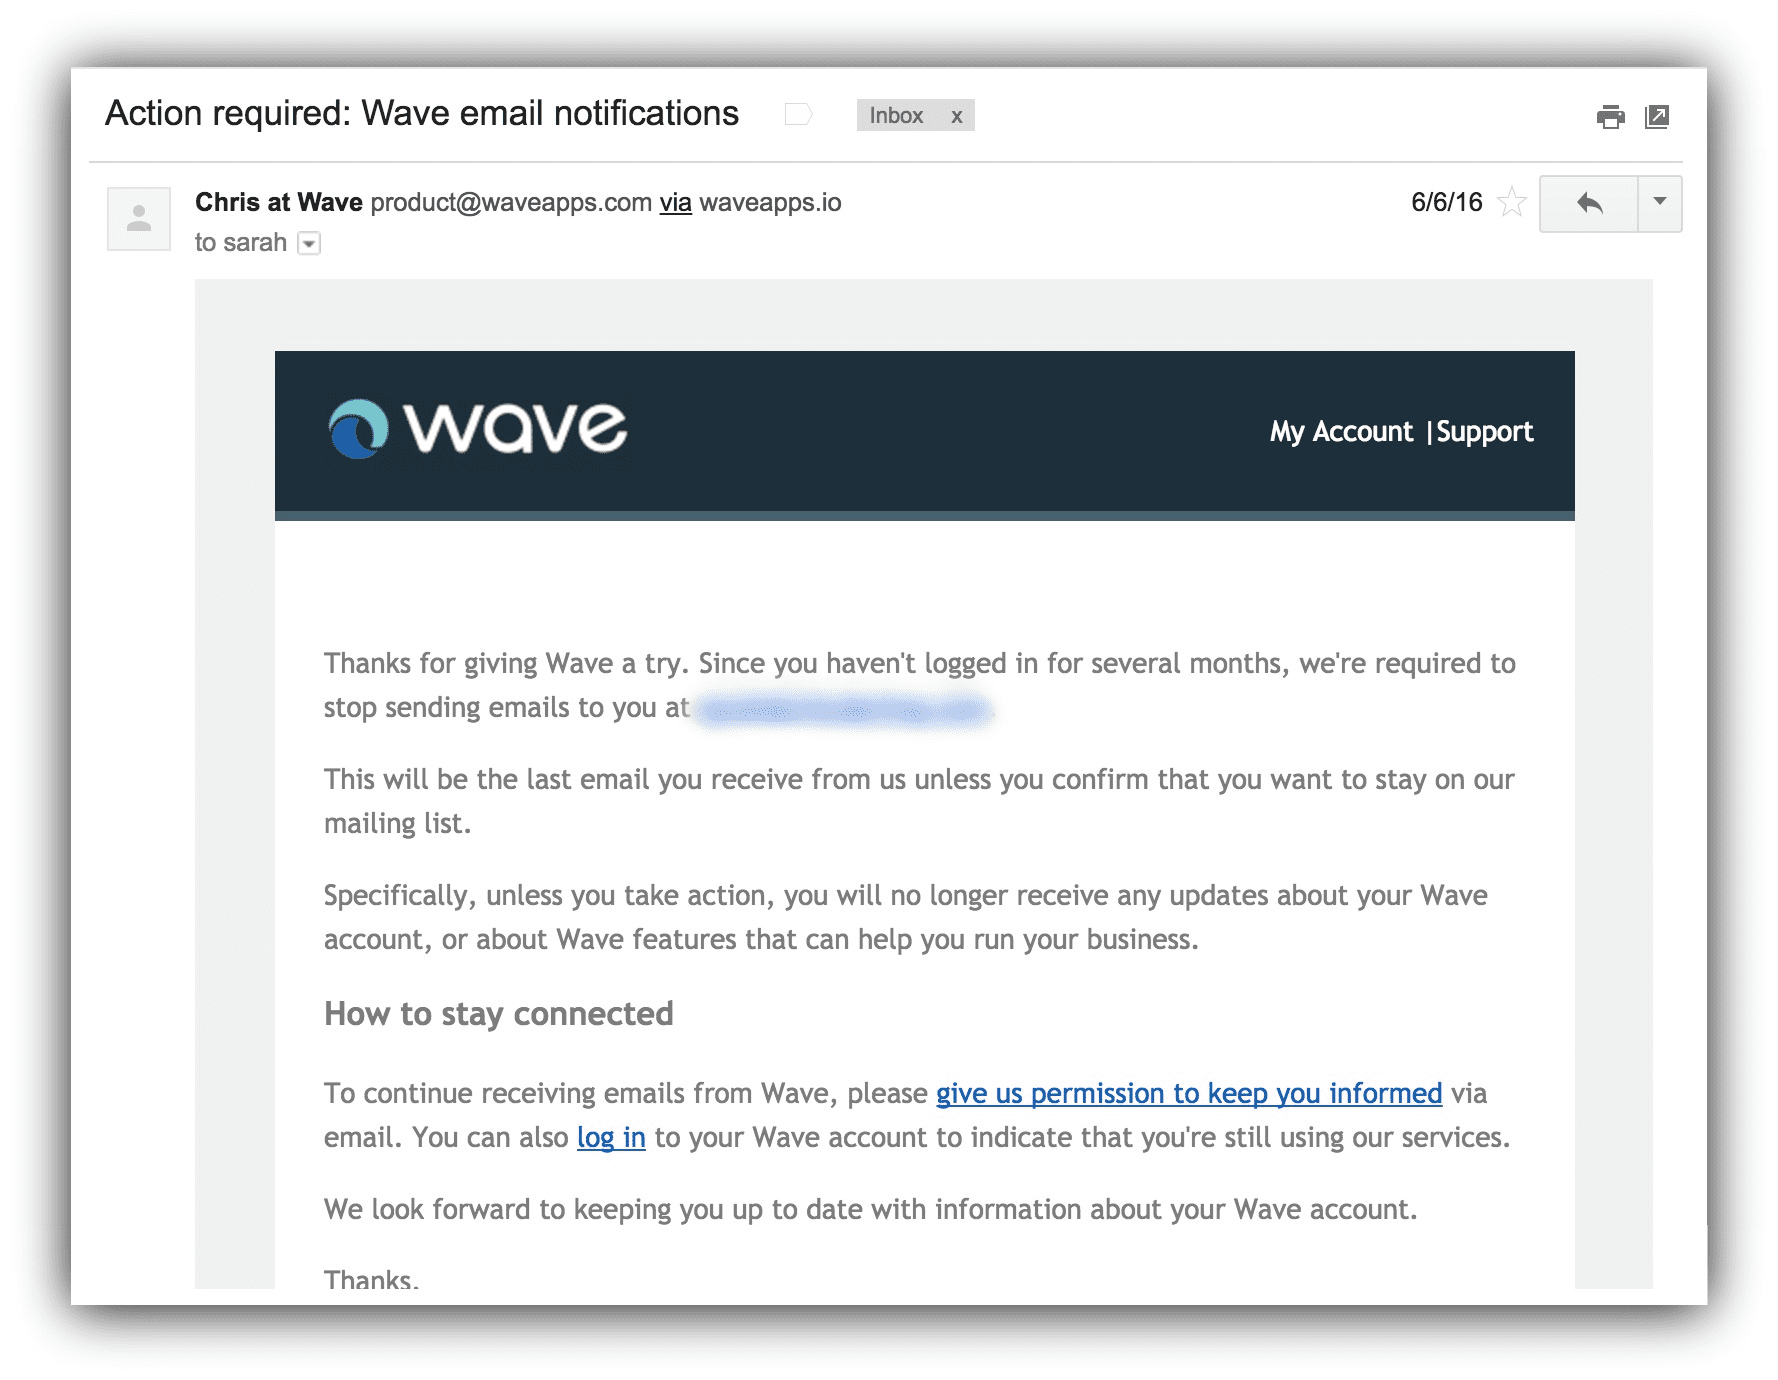 C:\Users\Роман\Desktop\wave-manage-unsubscribes.png